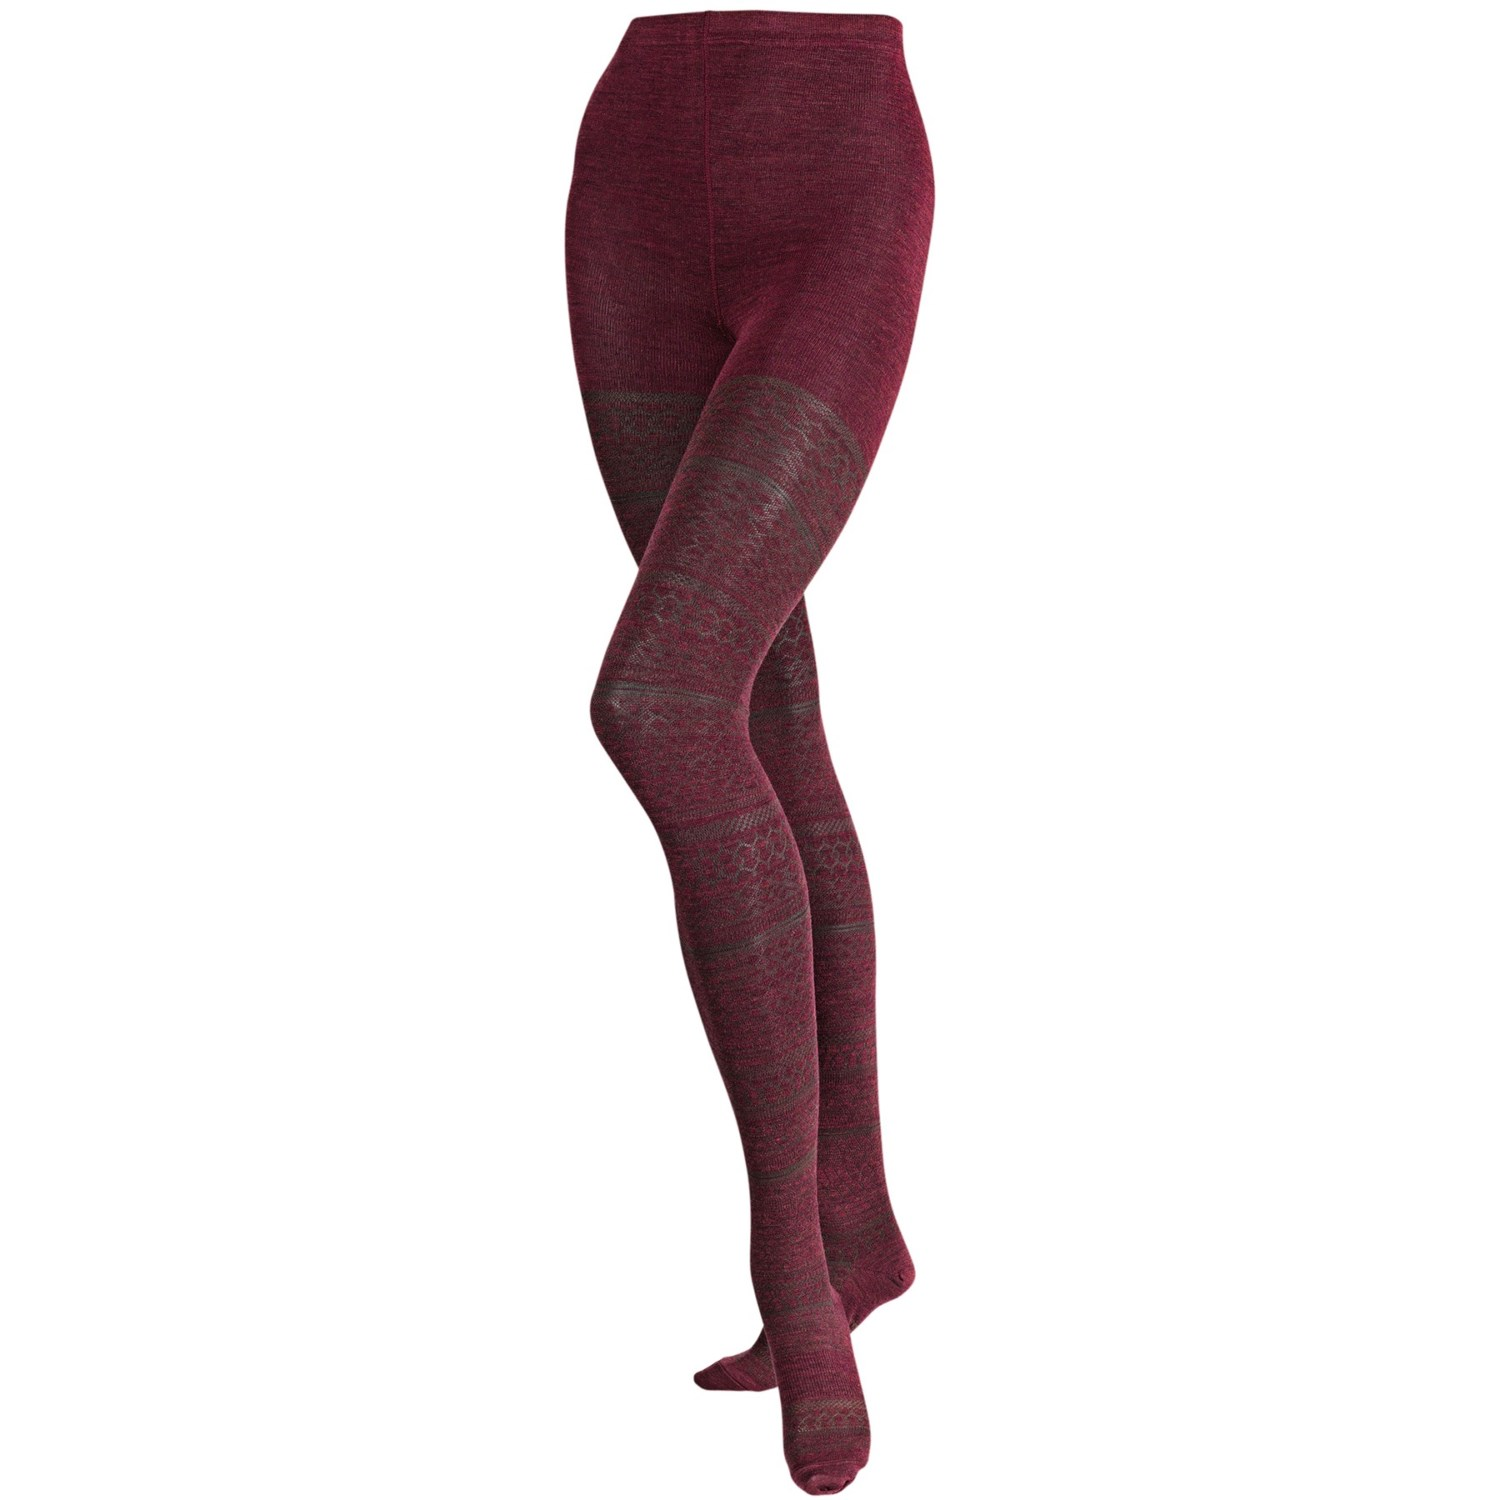 Hundreds of dance tights. Top brands and colors from $ for class, recital, or.